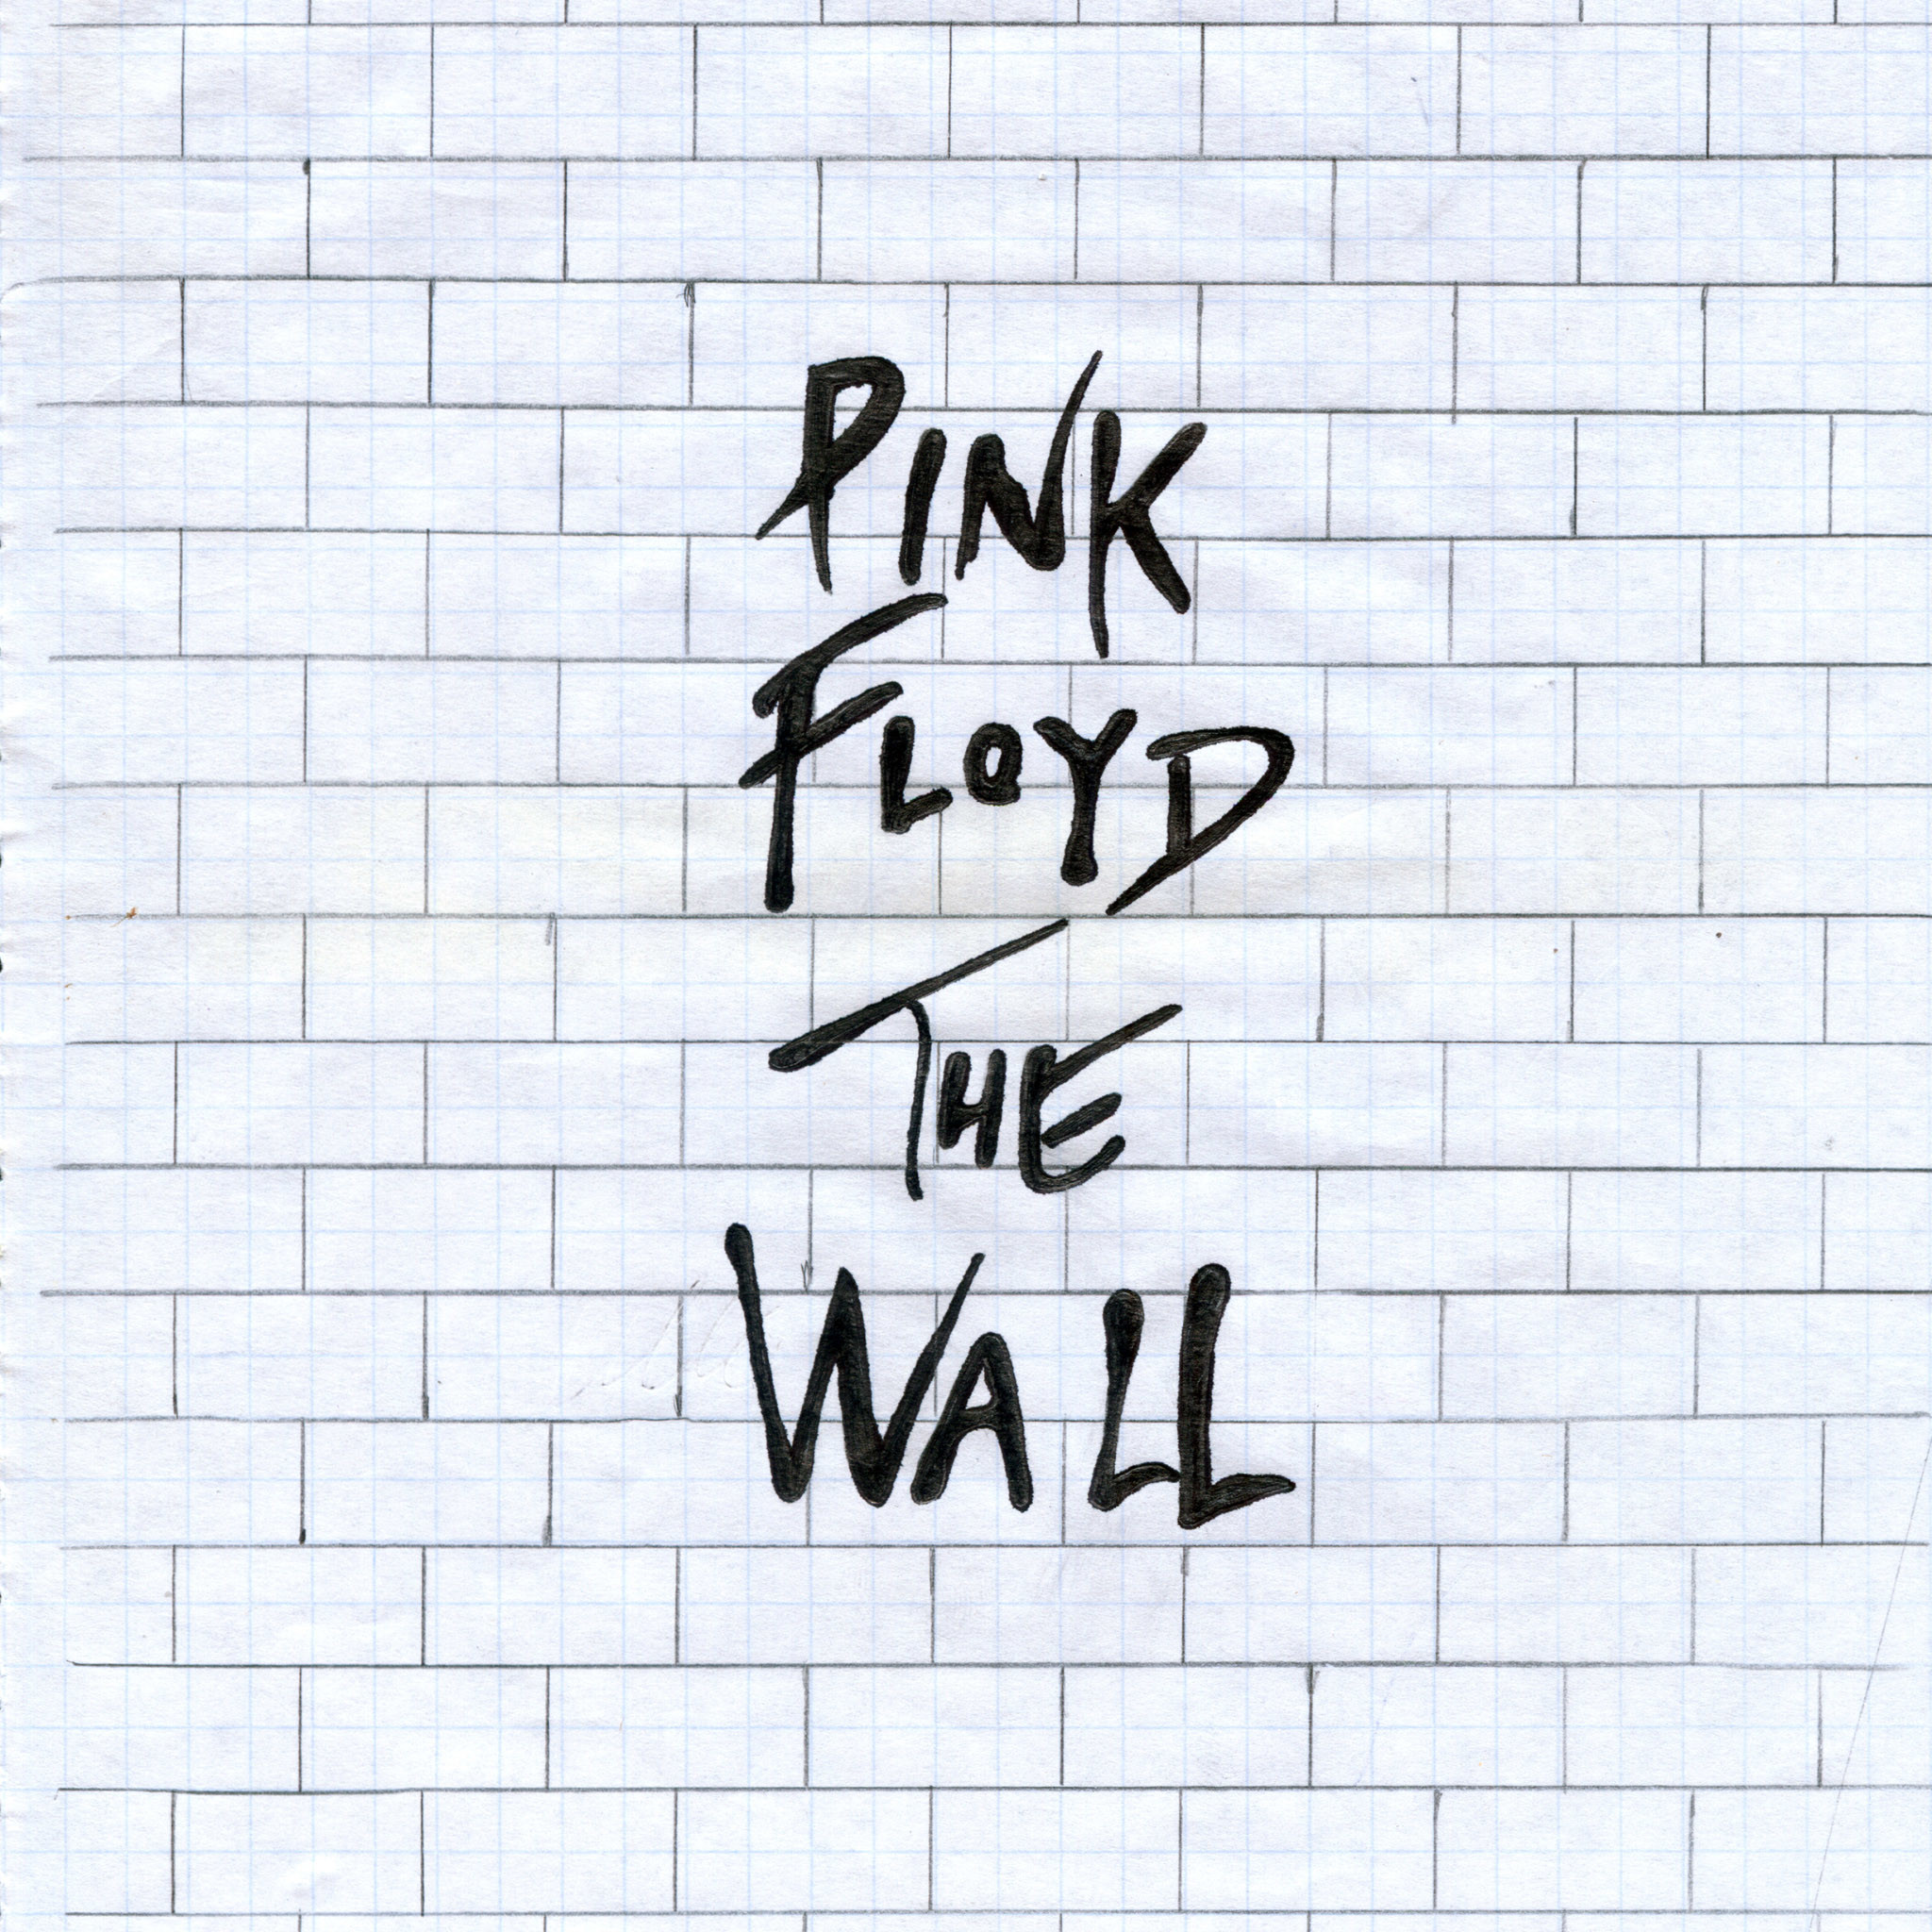 Wallpapers The Wall Pink Floyd – image #833260